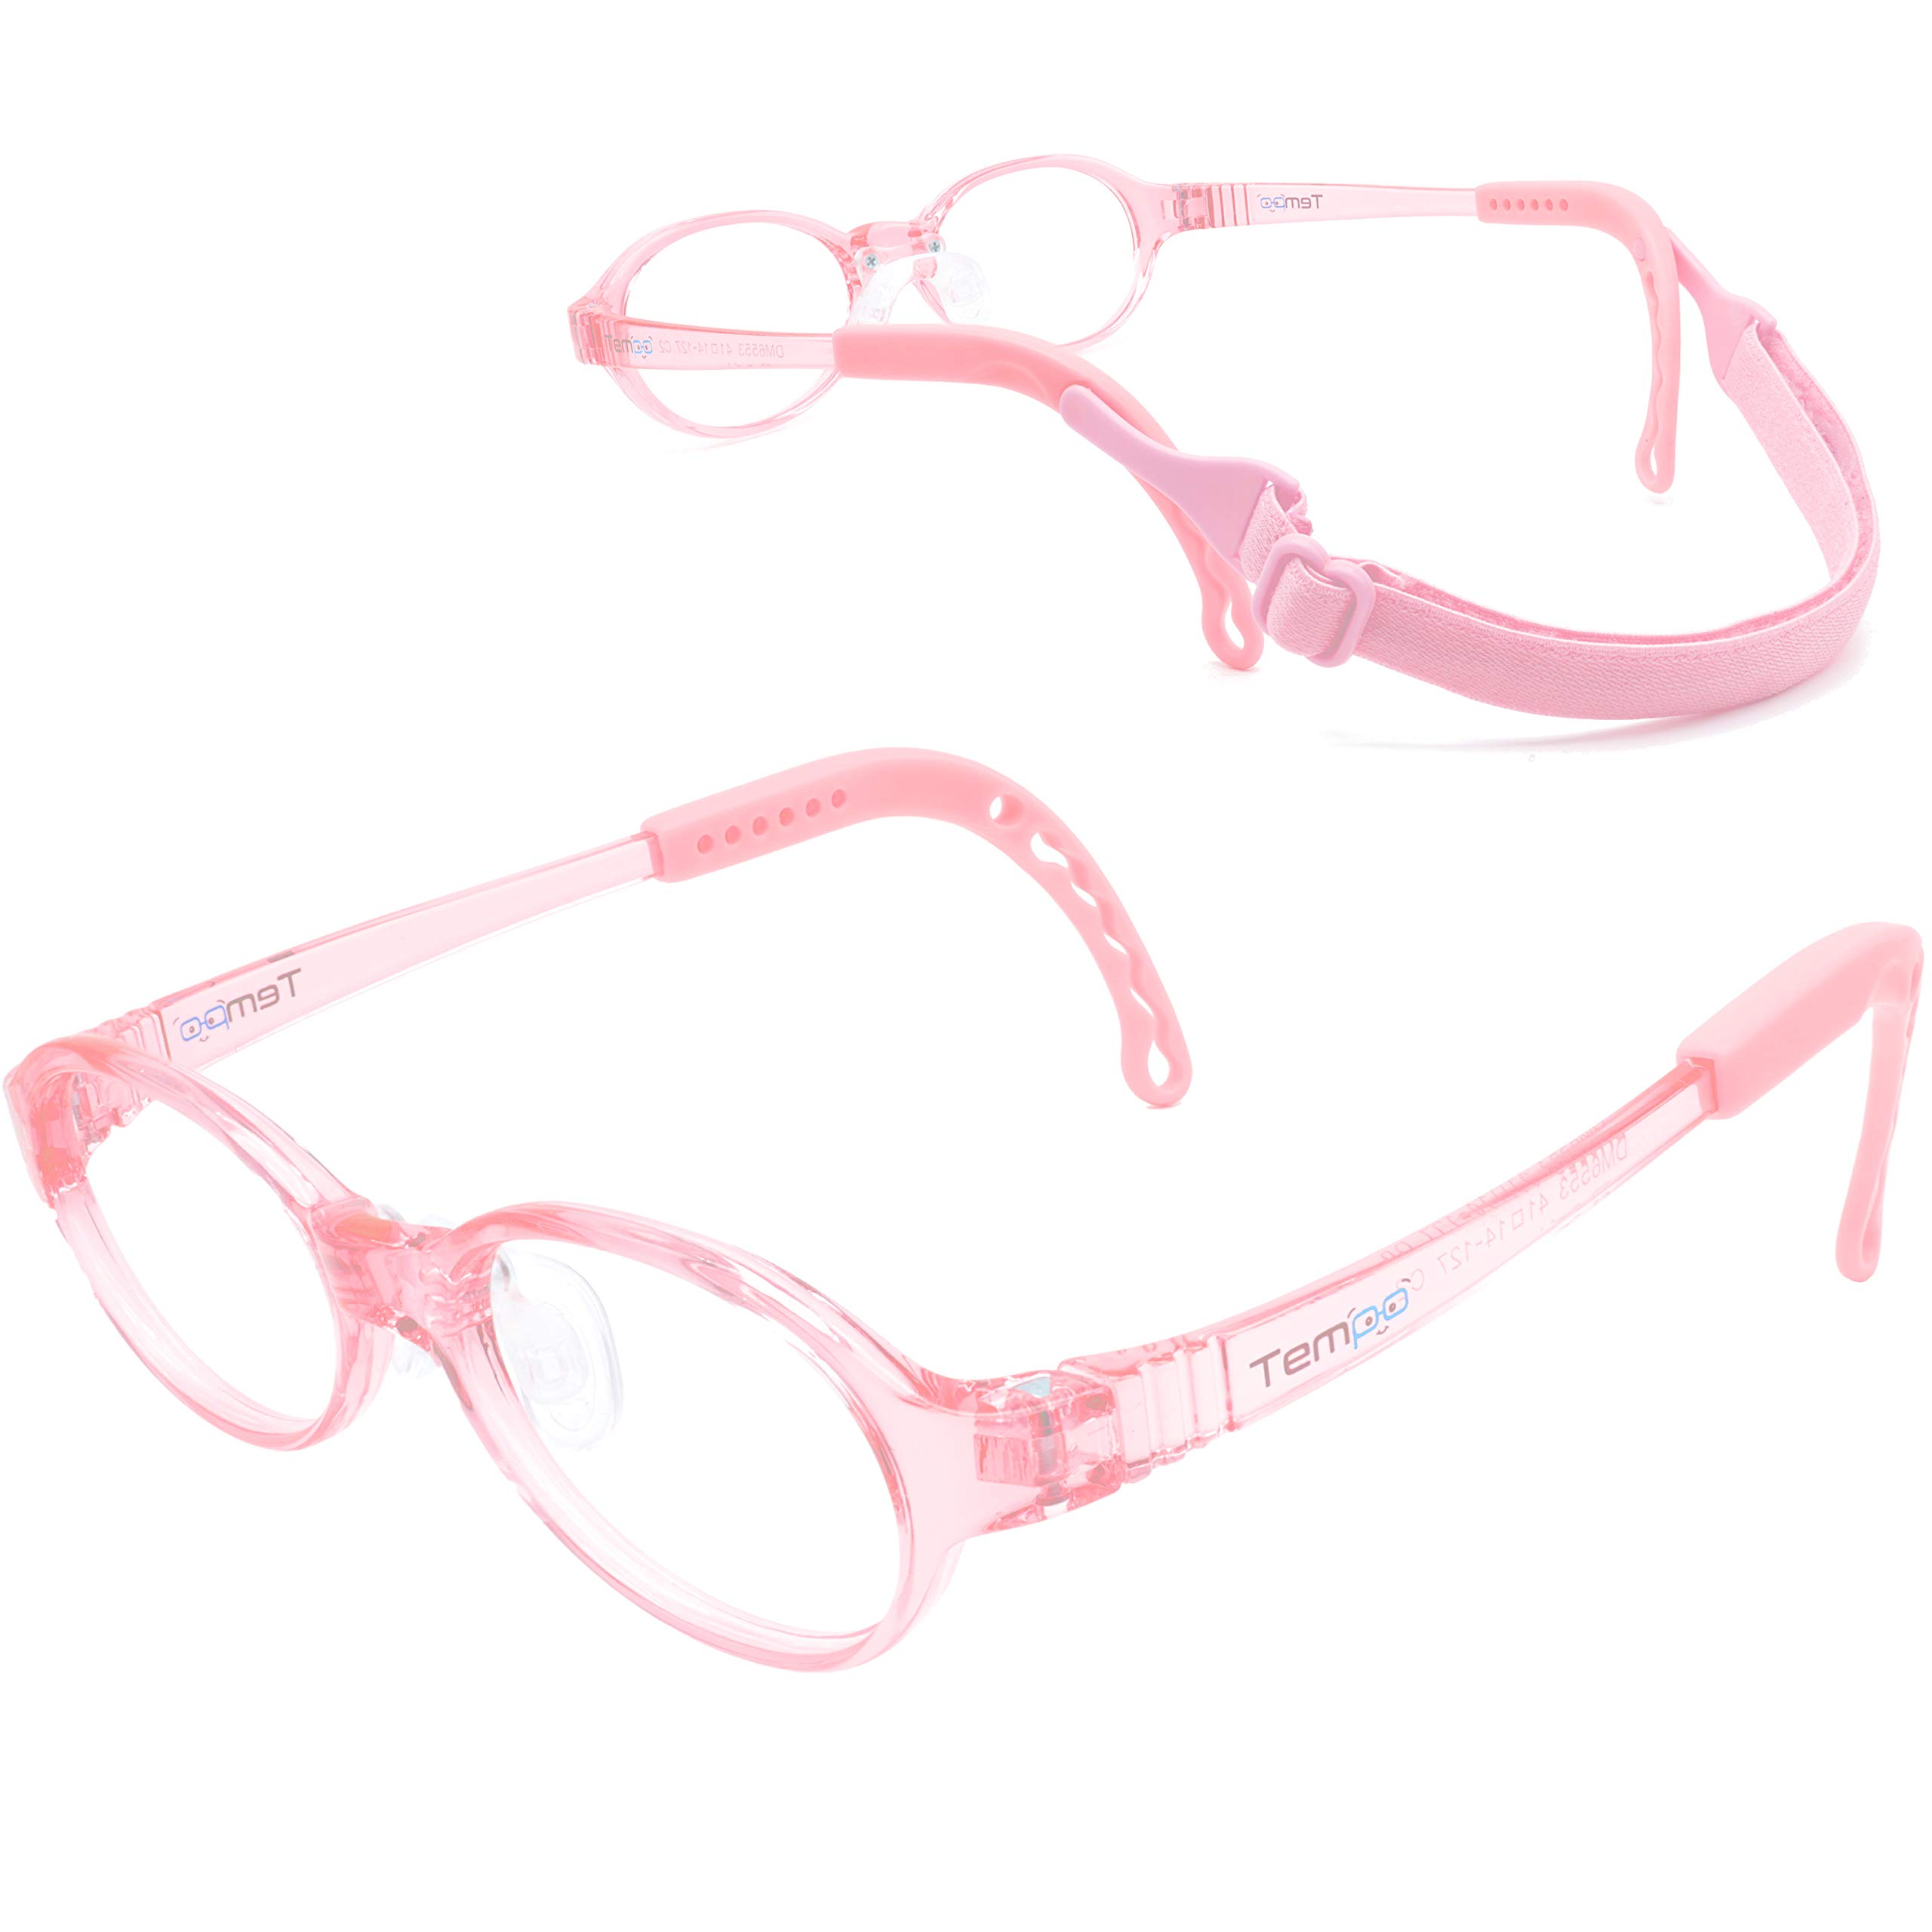 Tempo Perfect Fit: 200114 Adjustable and Repairable Kids Glasses Age 2-3Yr | Pink by Eye Attire